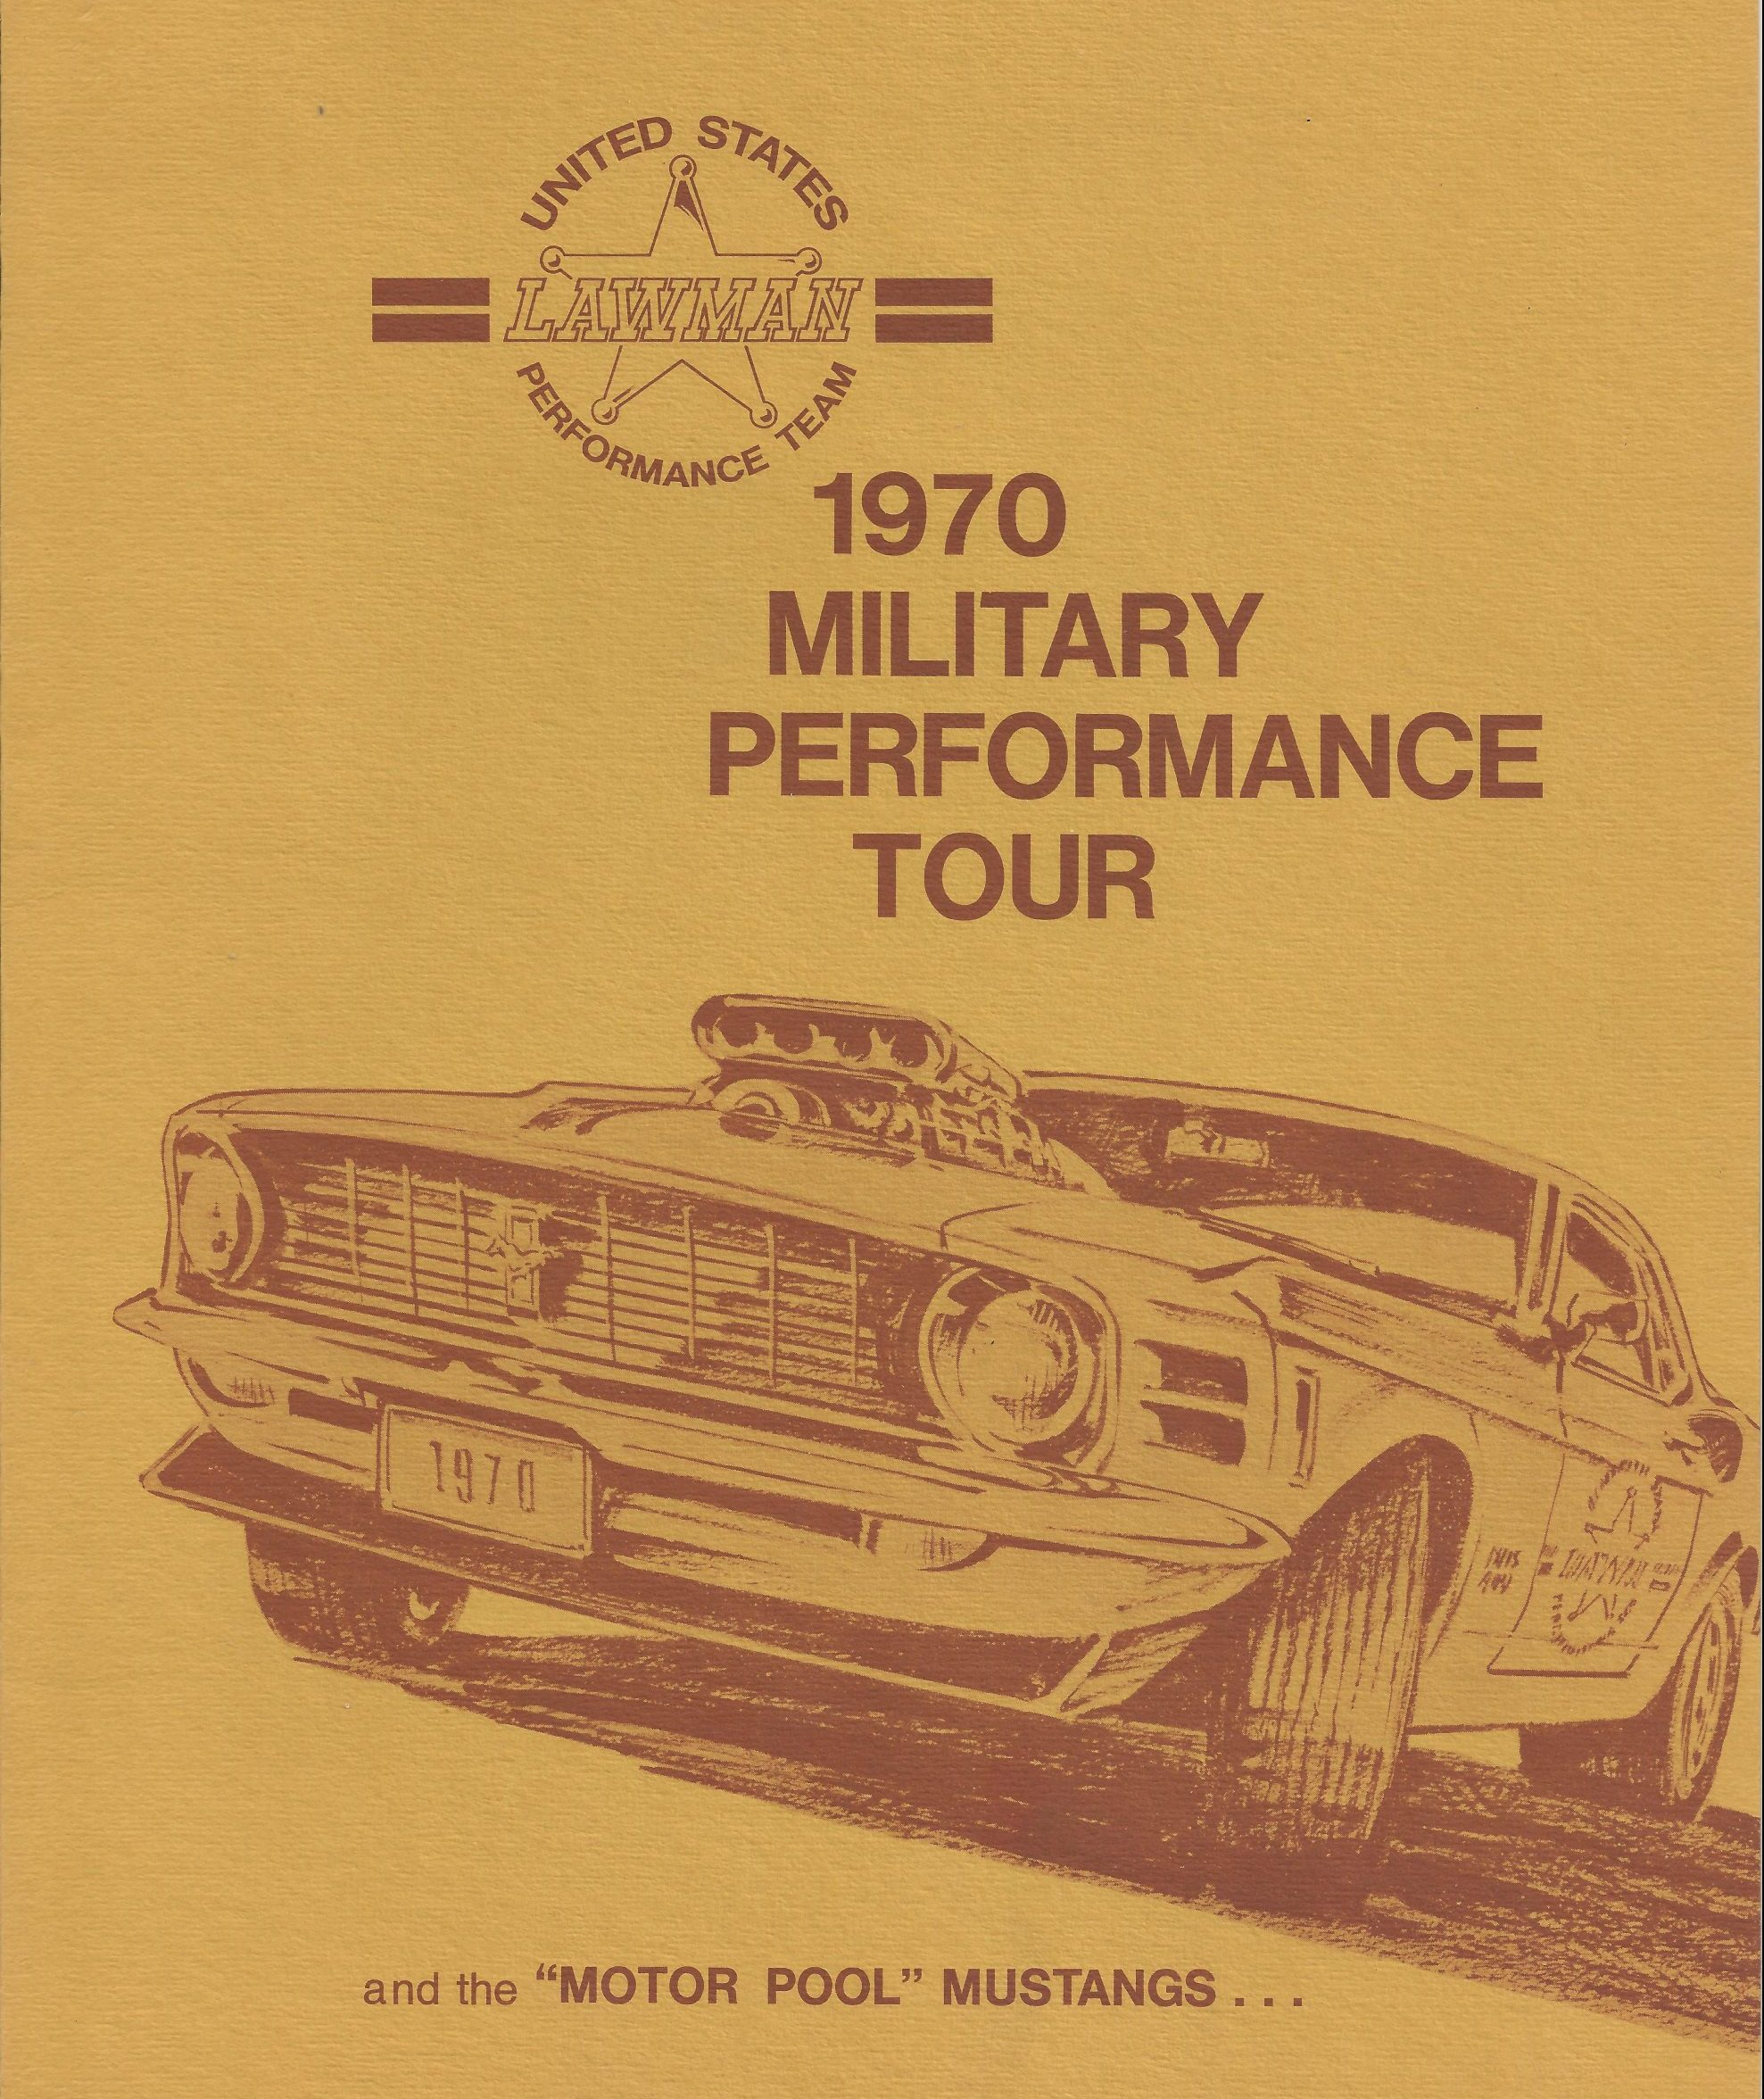 1970 Military Performance Tour literature cover